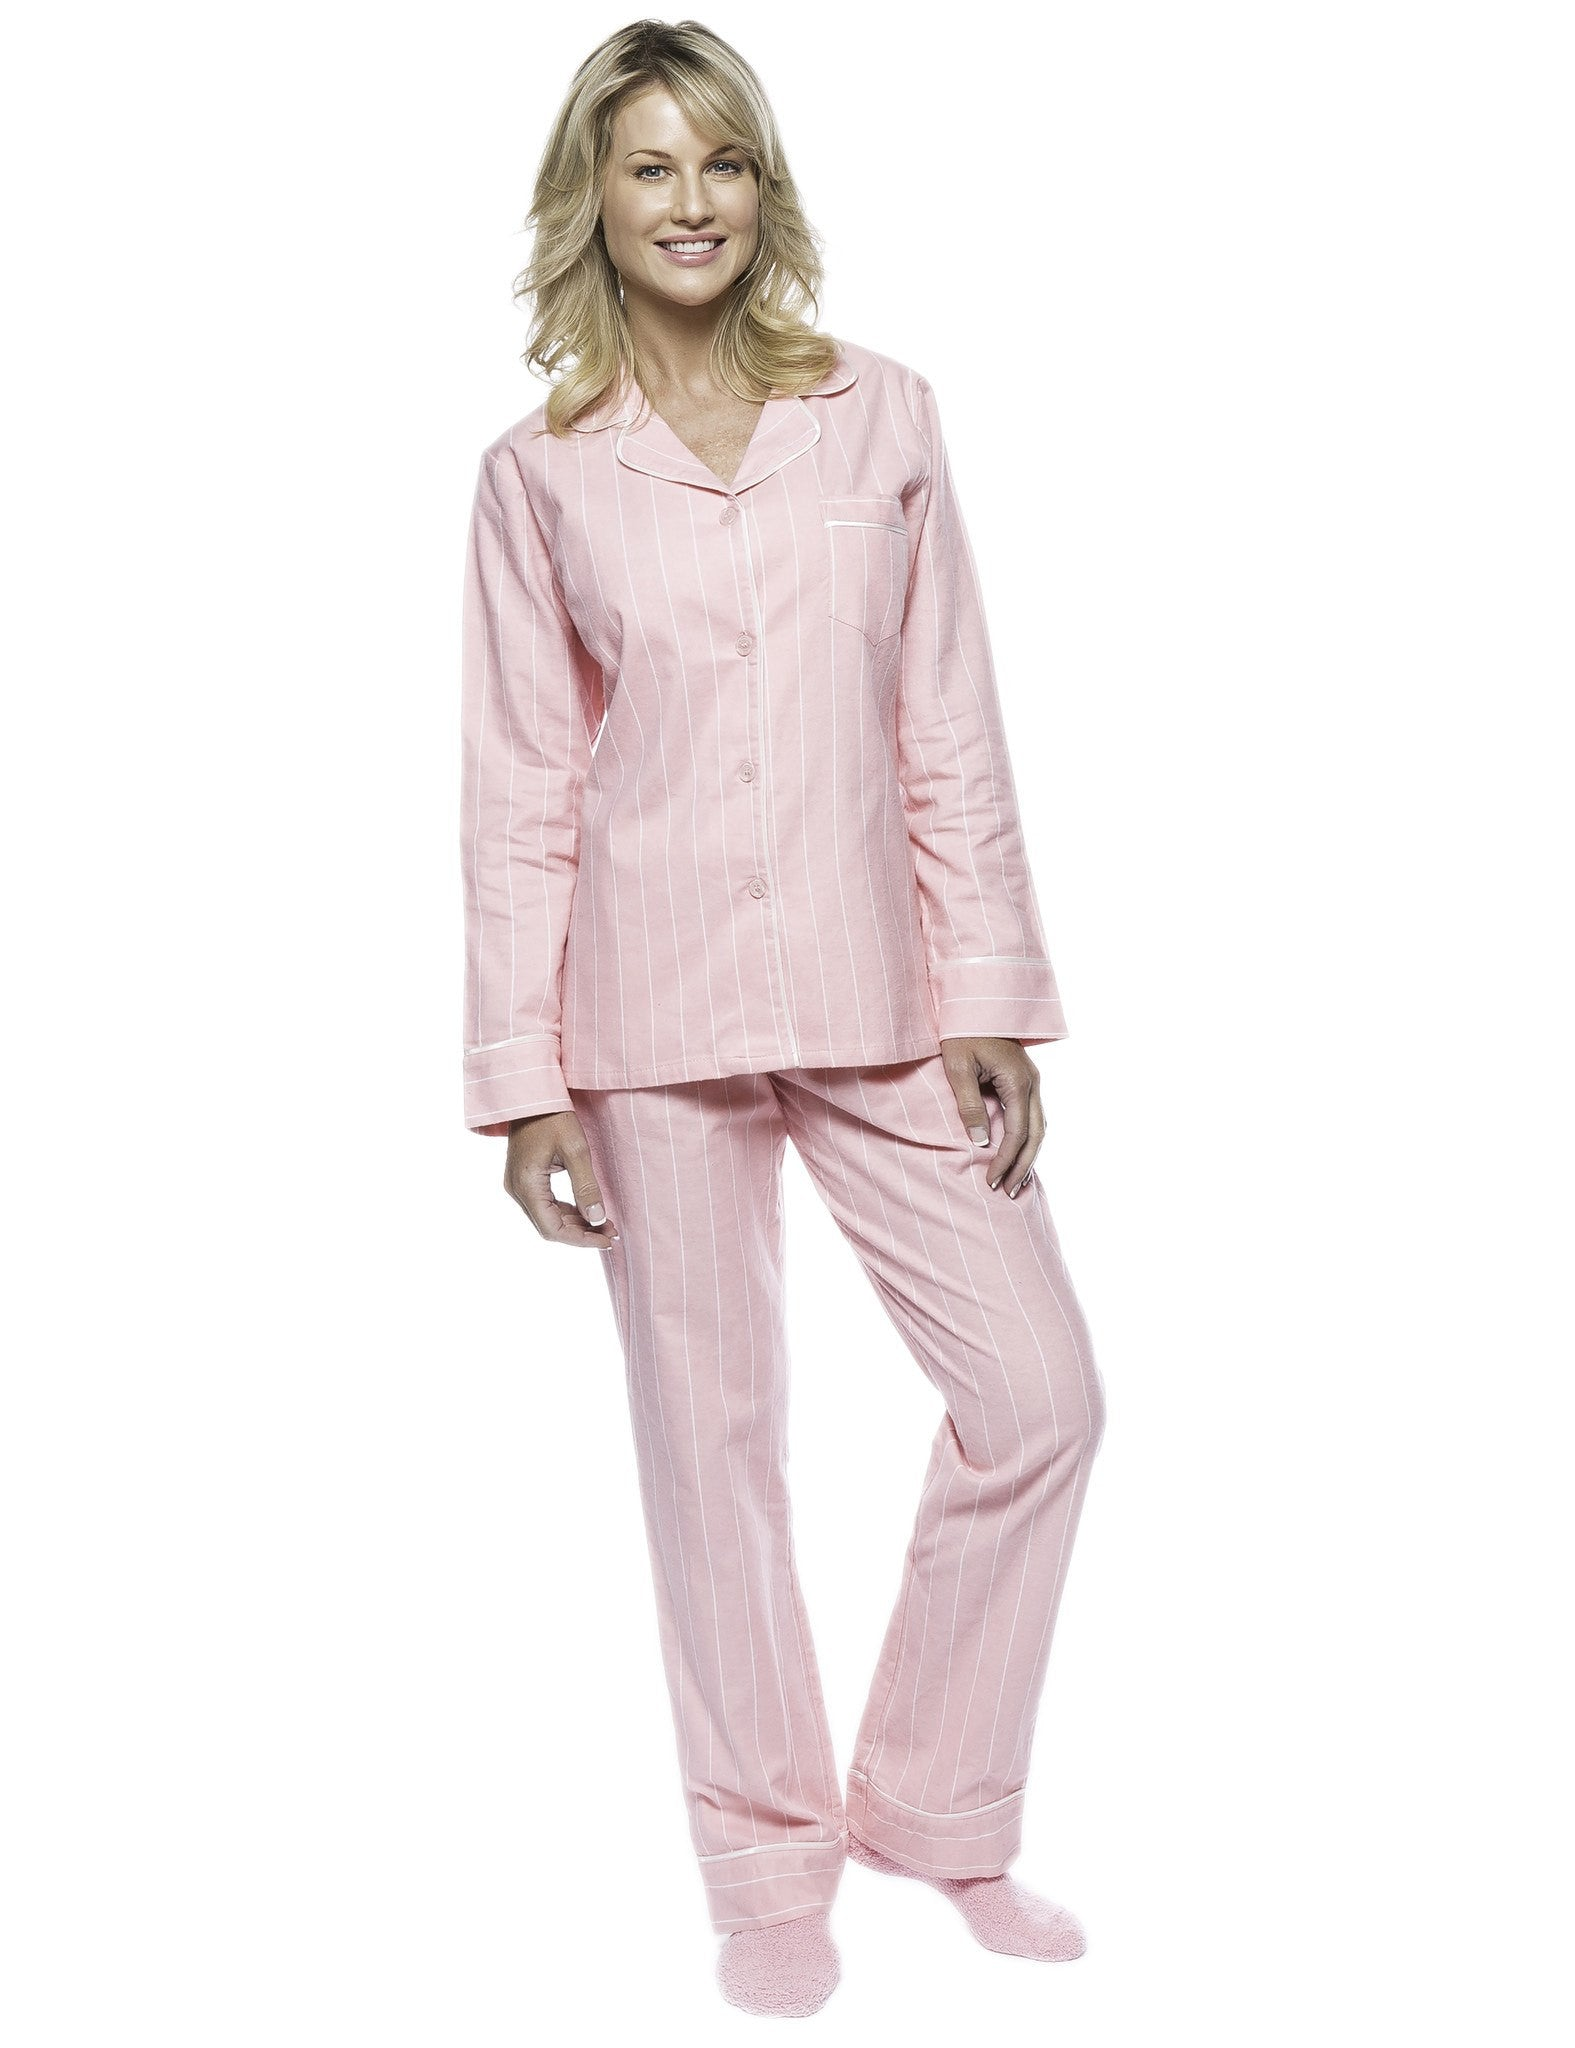 Boxed Pacakged Womens Premium Cotton Flannel Pajama Sleepwear Set with Free  Plush Socks - Stripes Pink 5c8ae95ad